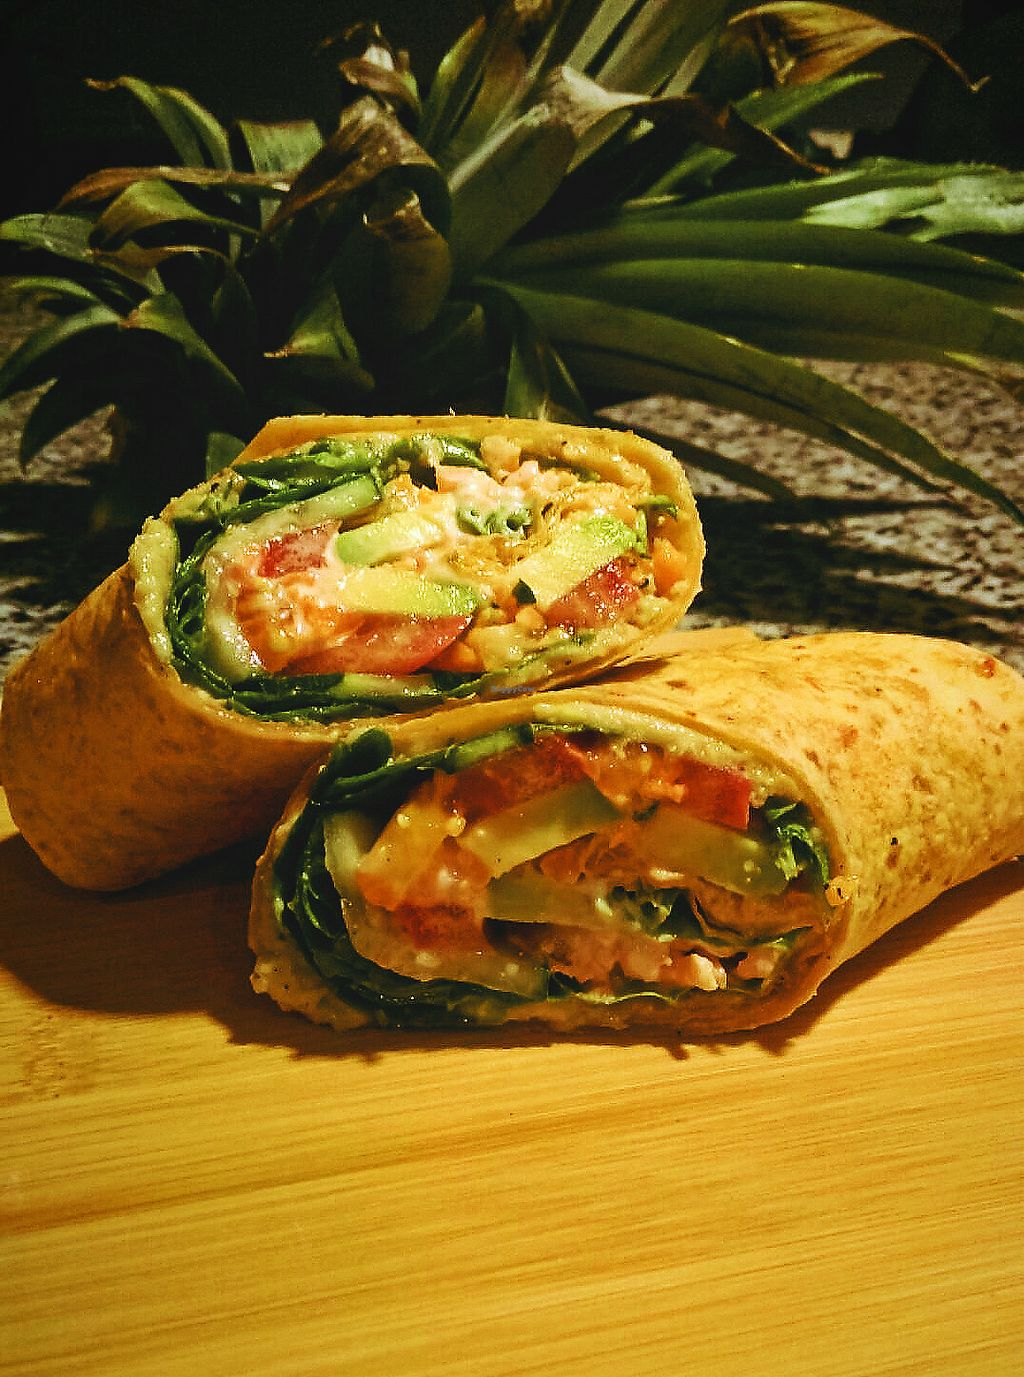 """Photo of EatQual  by <a href=""""/members/profile/Jazz5a"""">Jazz5a</a> <br/>Homemade Pineapple Jalapeno Hummus, avocado, cucumber, carrots and spinach wrap <br/> November 6, 2017  - <a href='/contact/abuse/image/104446/322722'>Report</a>"""